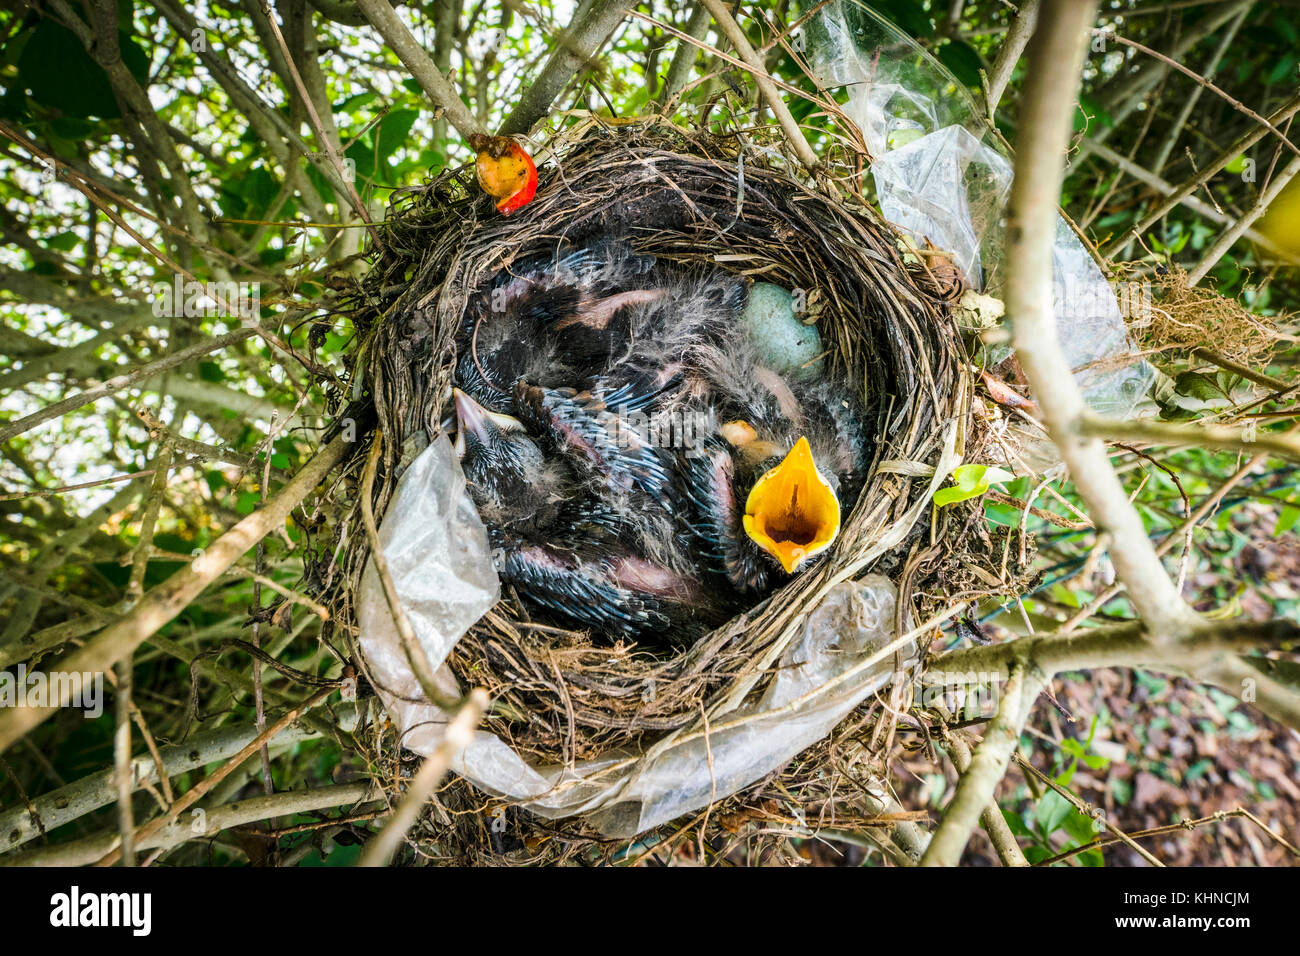 Birdnest from above with newly hatched hungry blackbirds screaming for food - Stock Image